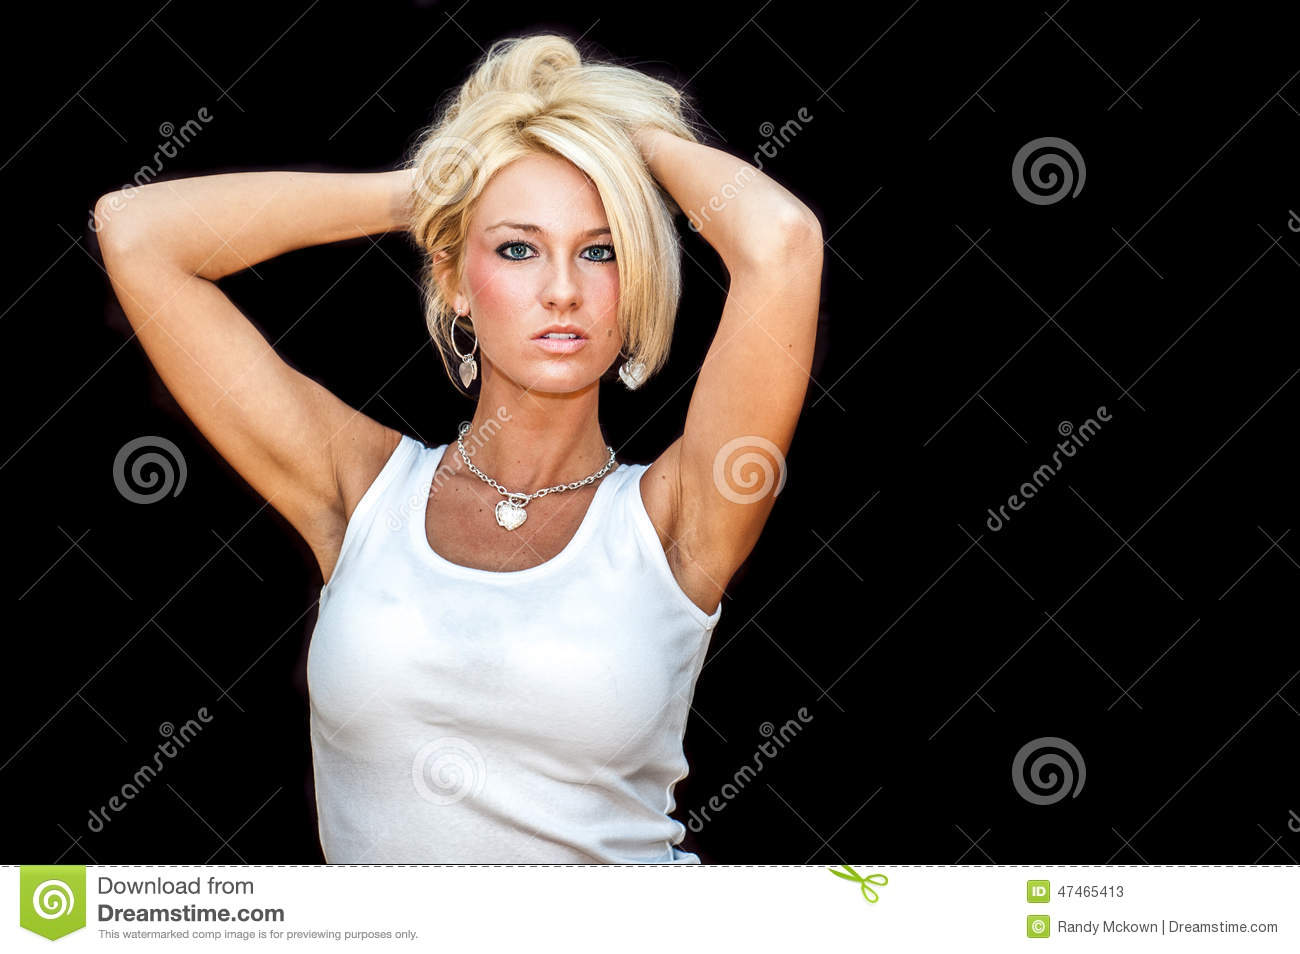 5d7a7fbf944 woman / girl blonde fashion model. Dressed in casual white tank top shirt.  Woman / female studio portrait isolated against black background.